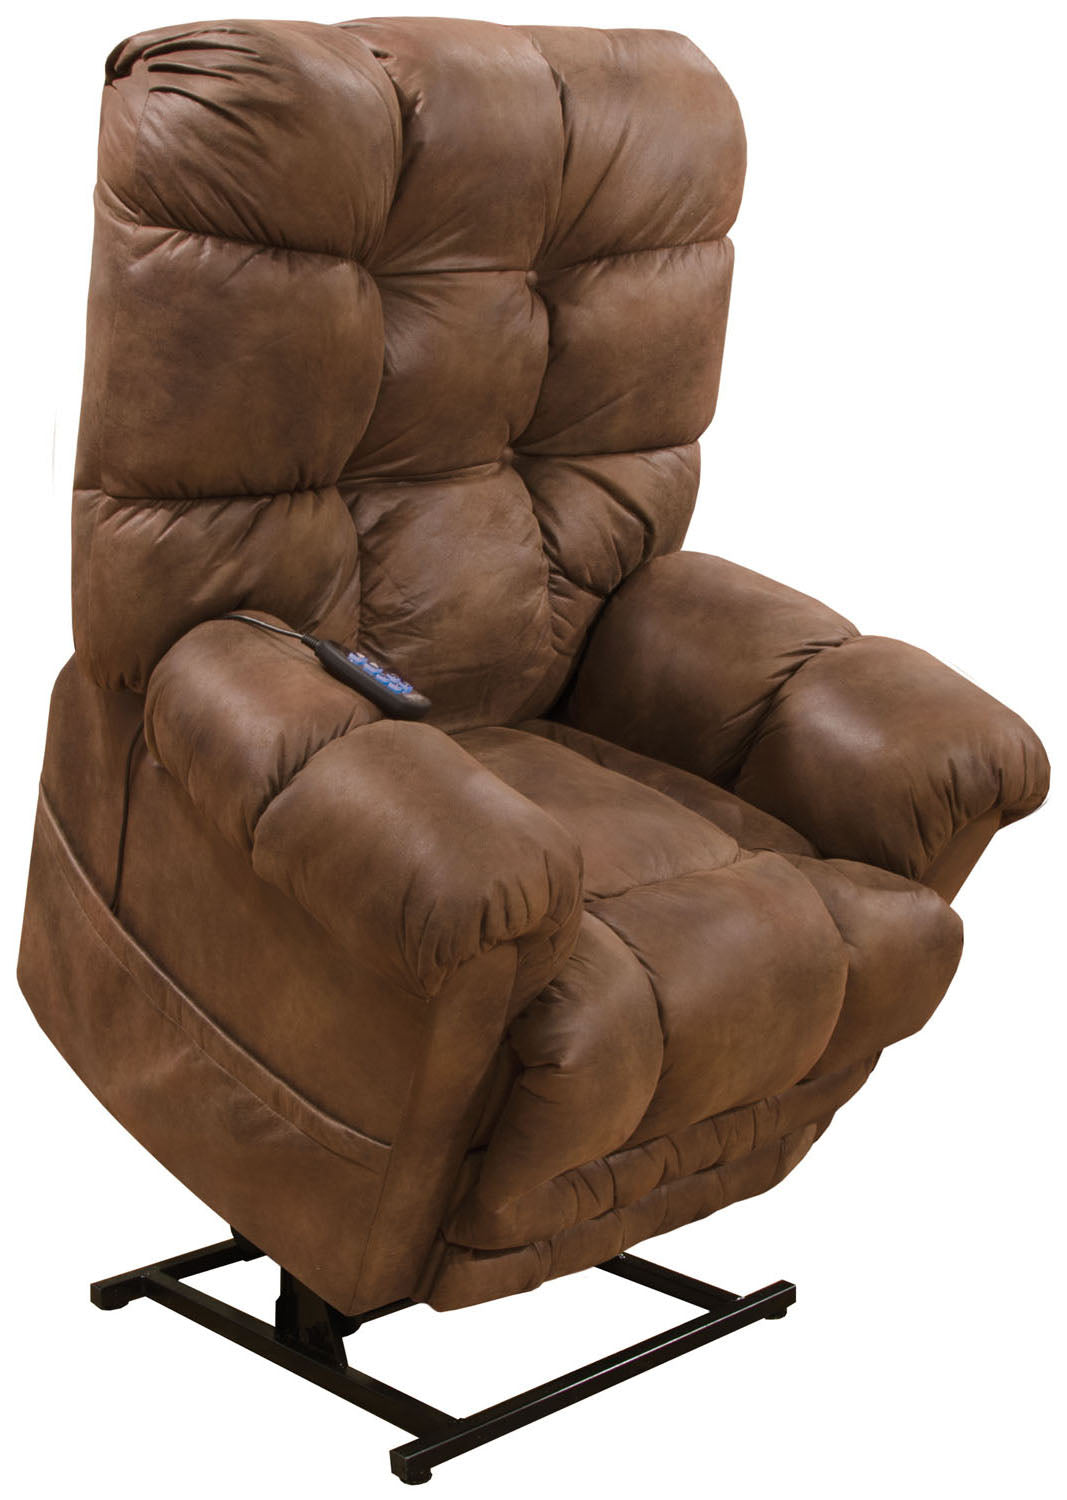 Oliver 4861 Infinite Position Lift Chair & Recliner